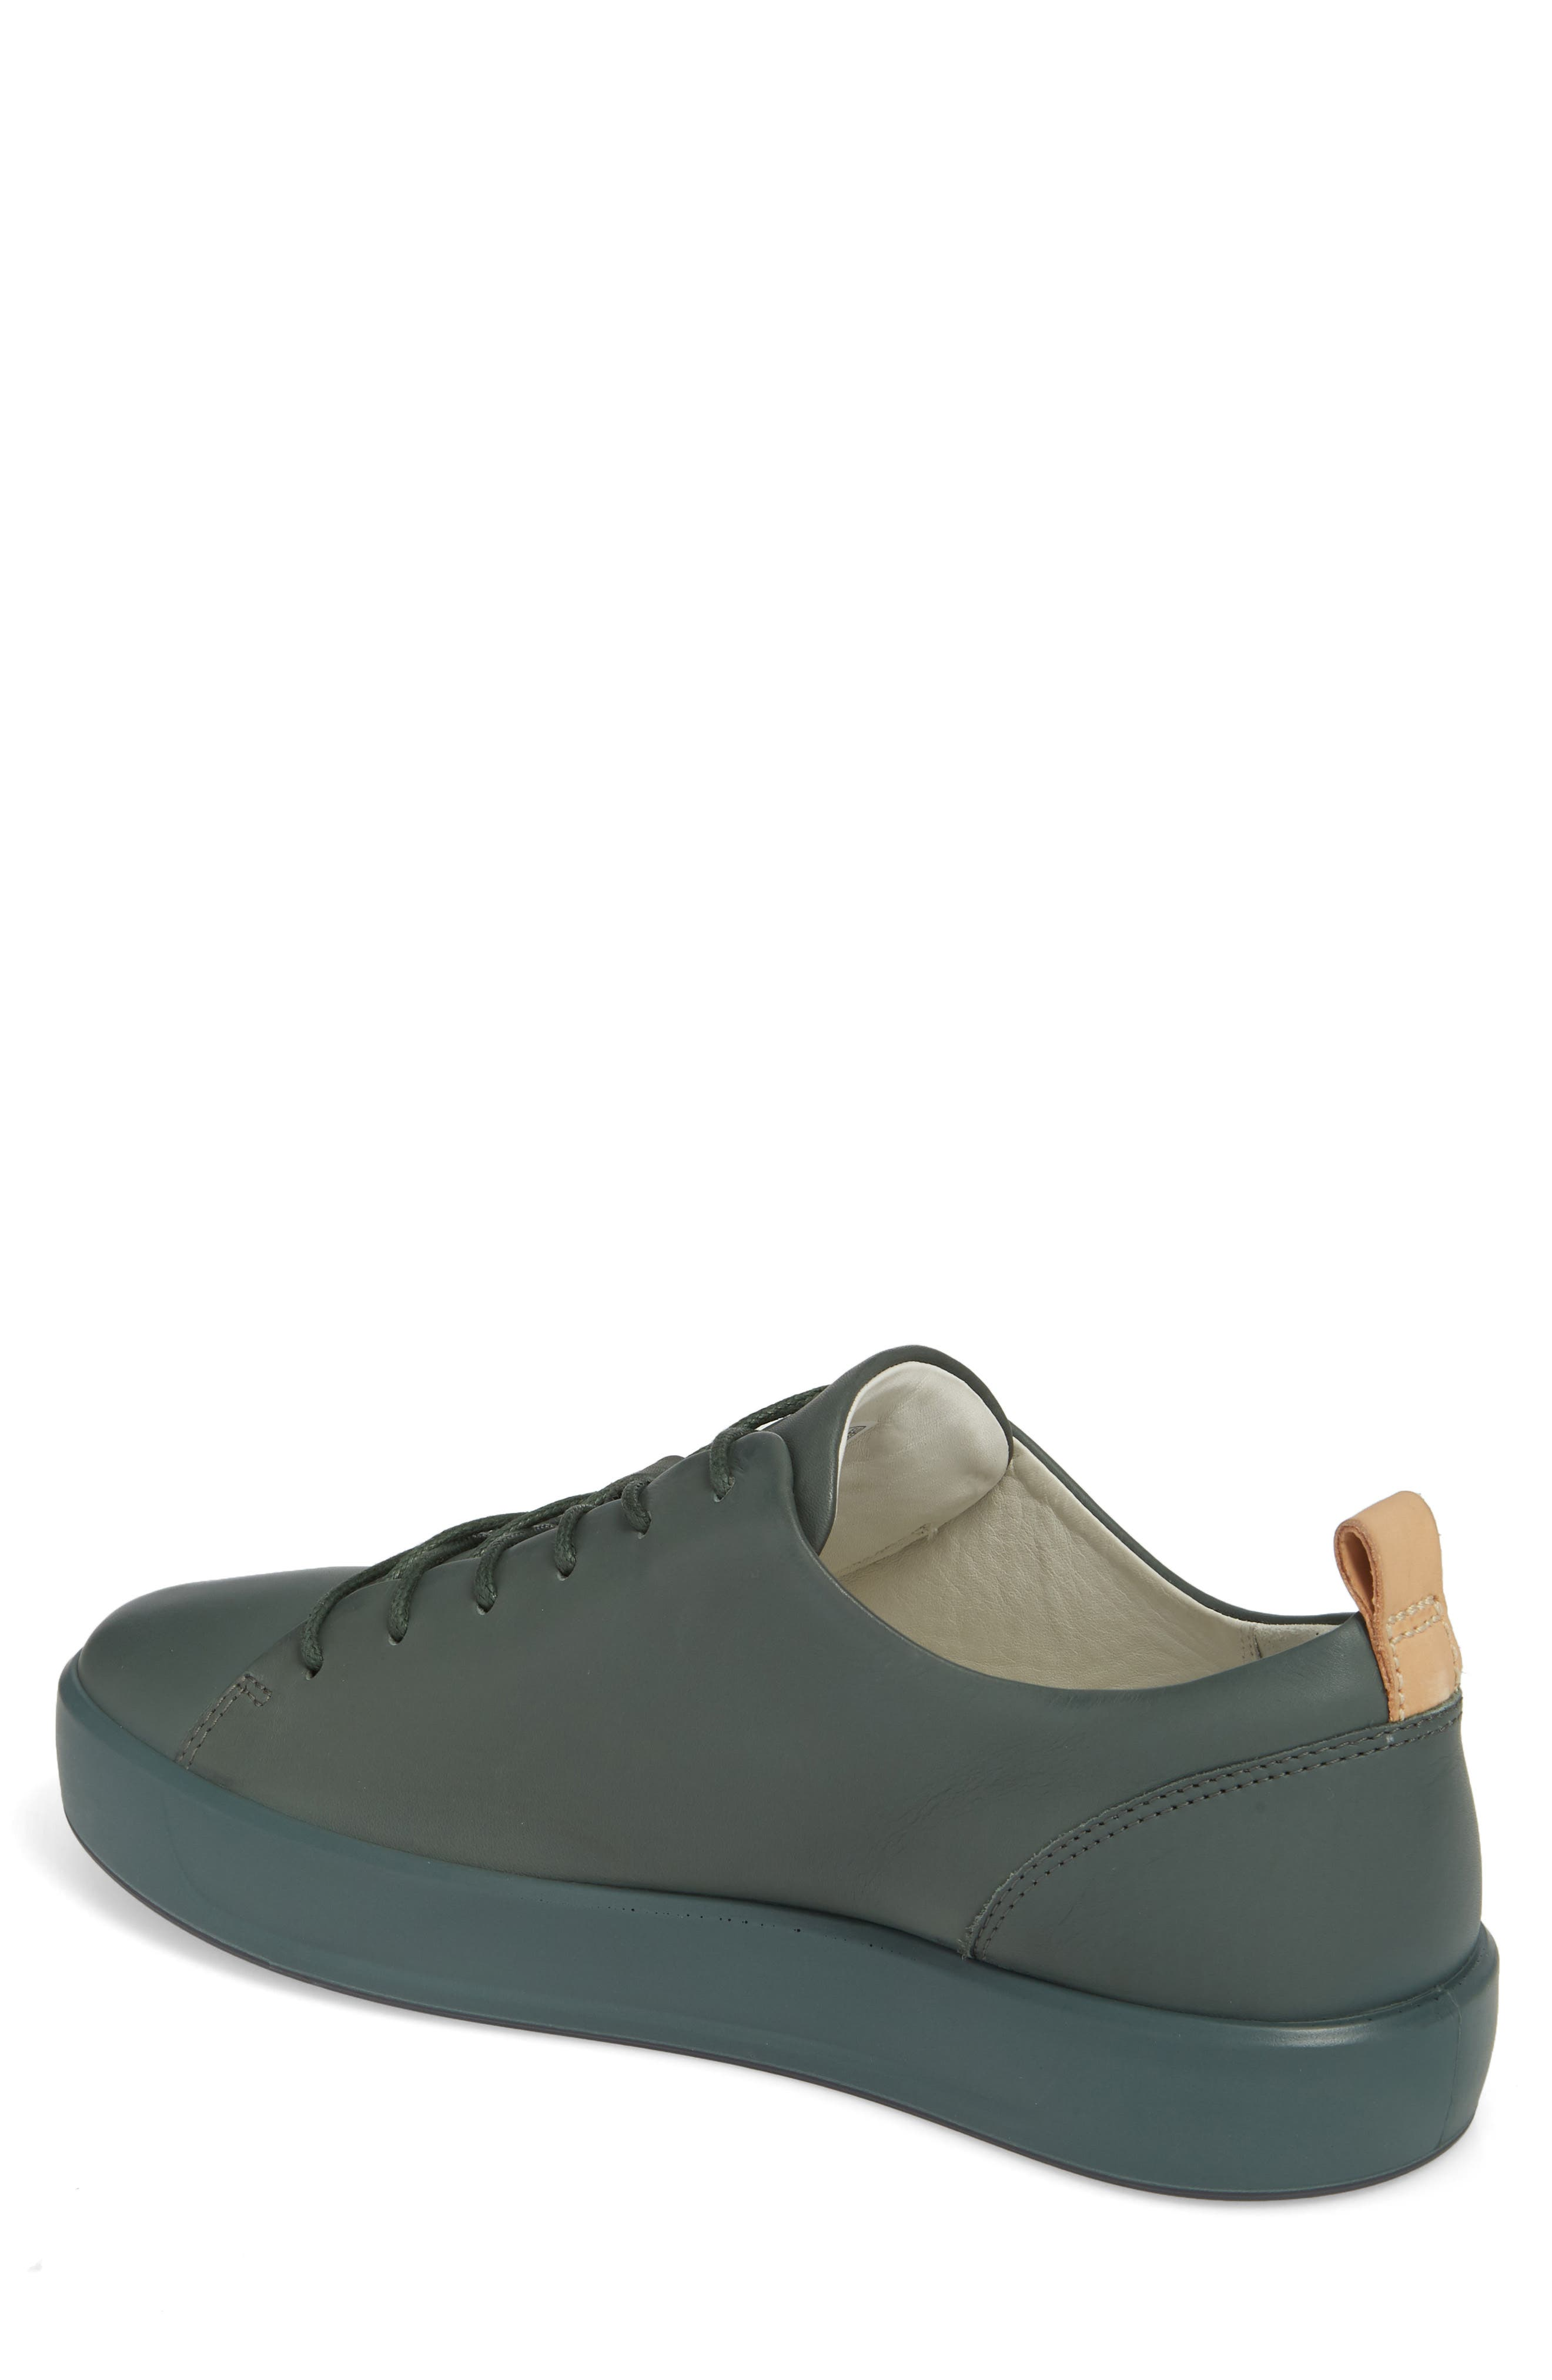 Soft 8 Low Top Sneaker,                             Alternate thumbnail 2, color,                             Military Sage Leather